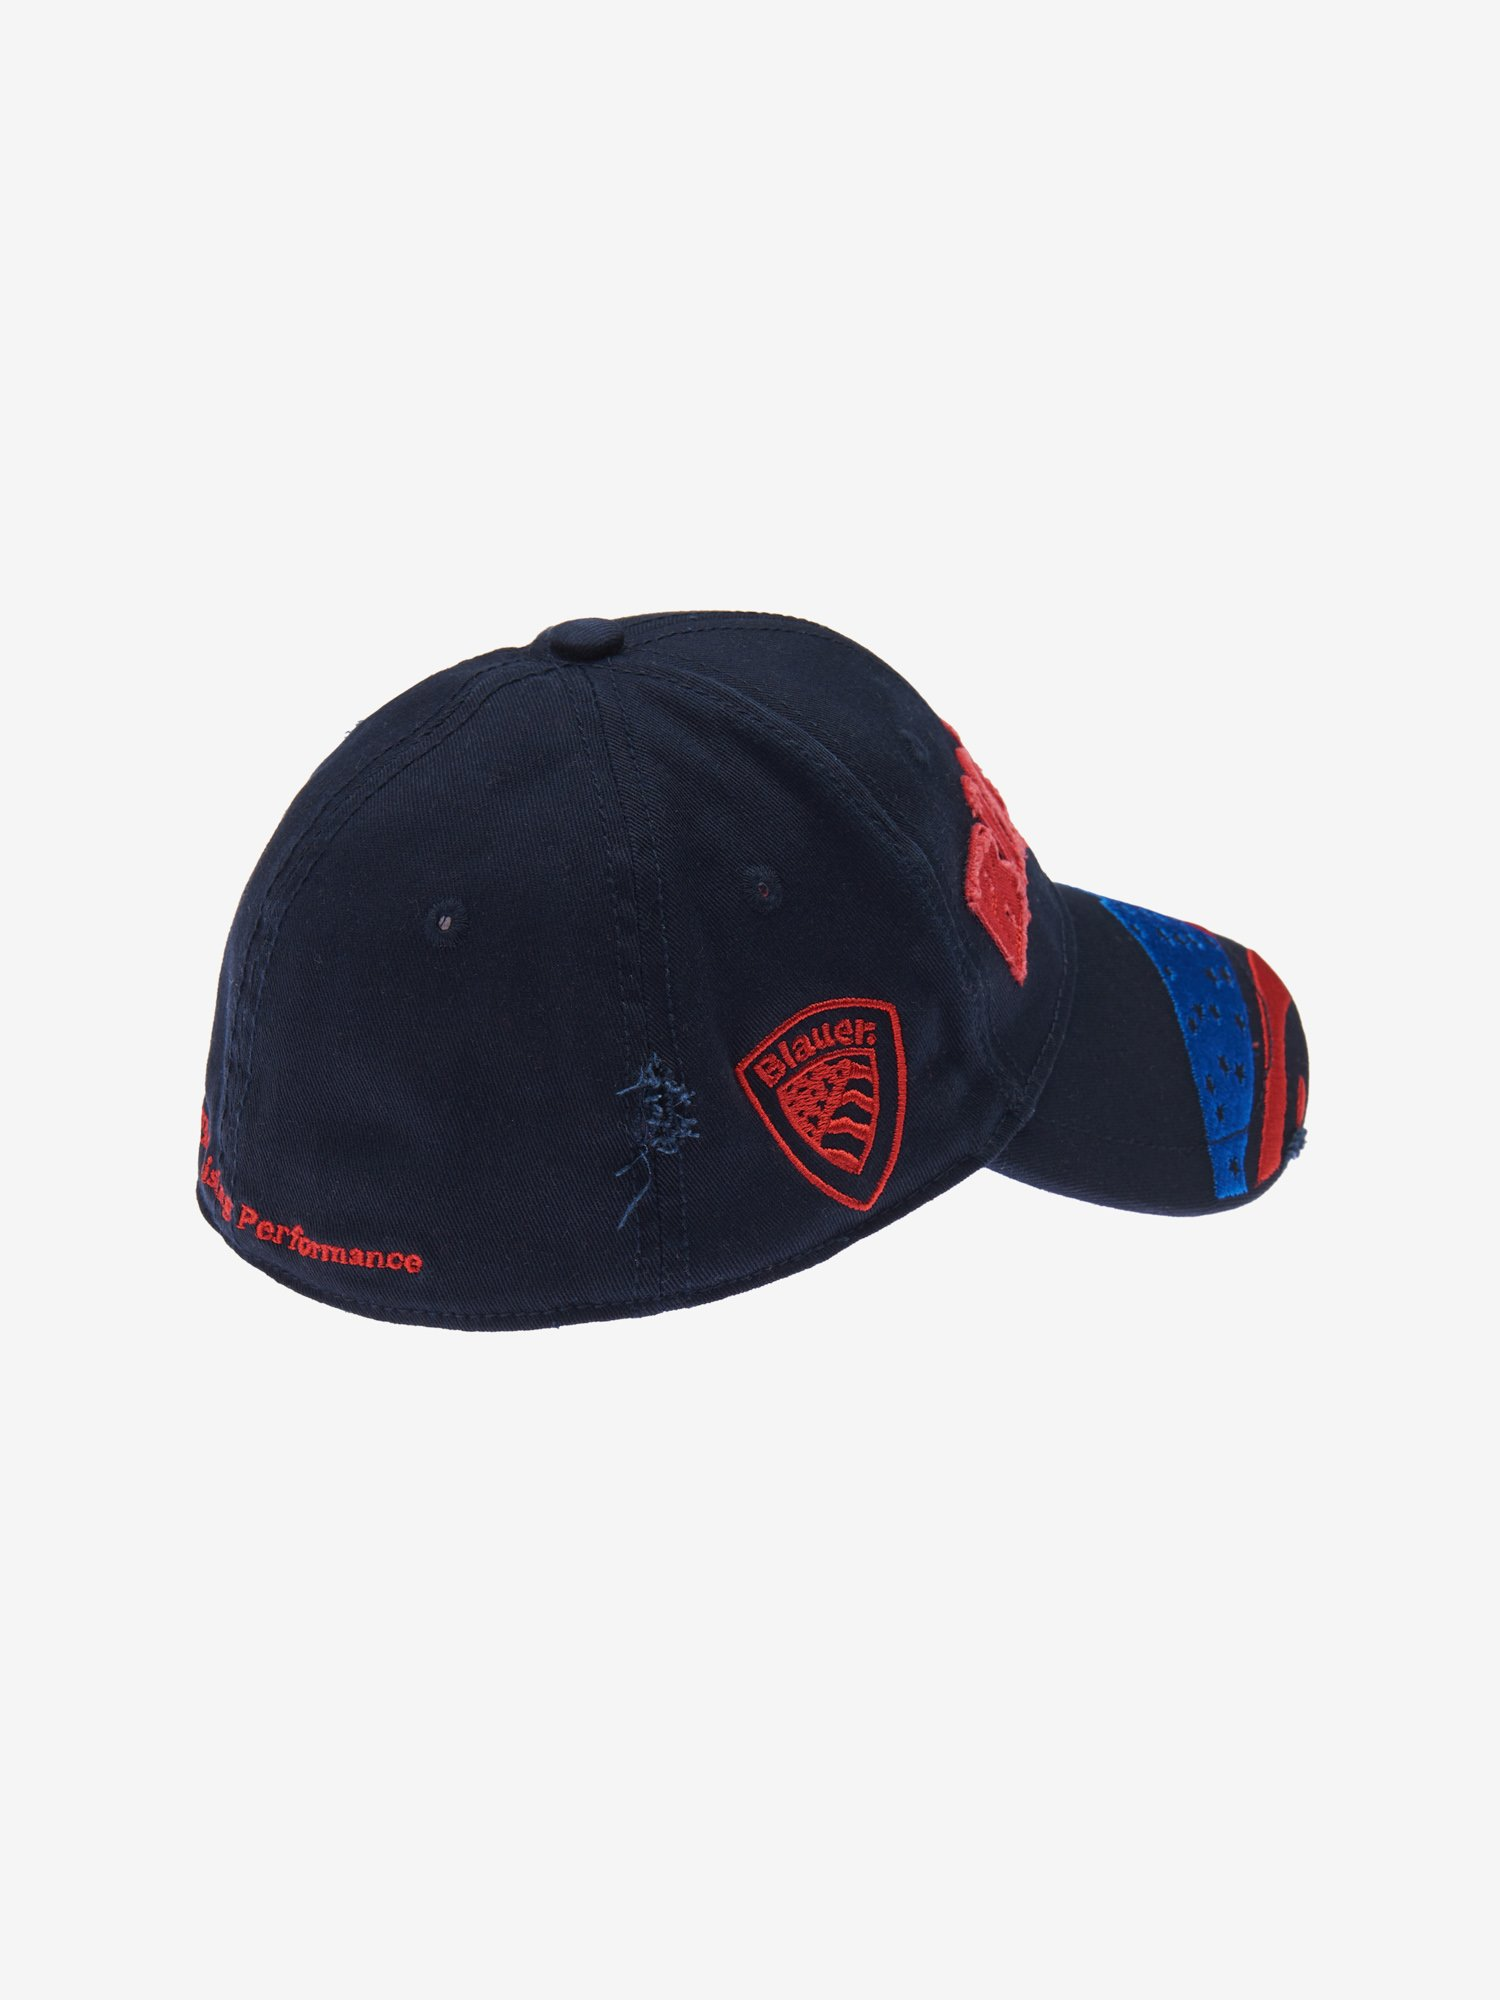 CAP JUNIOR - Blauer